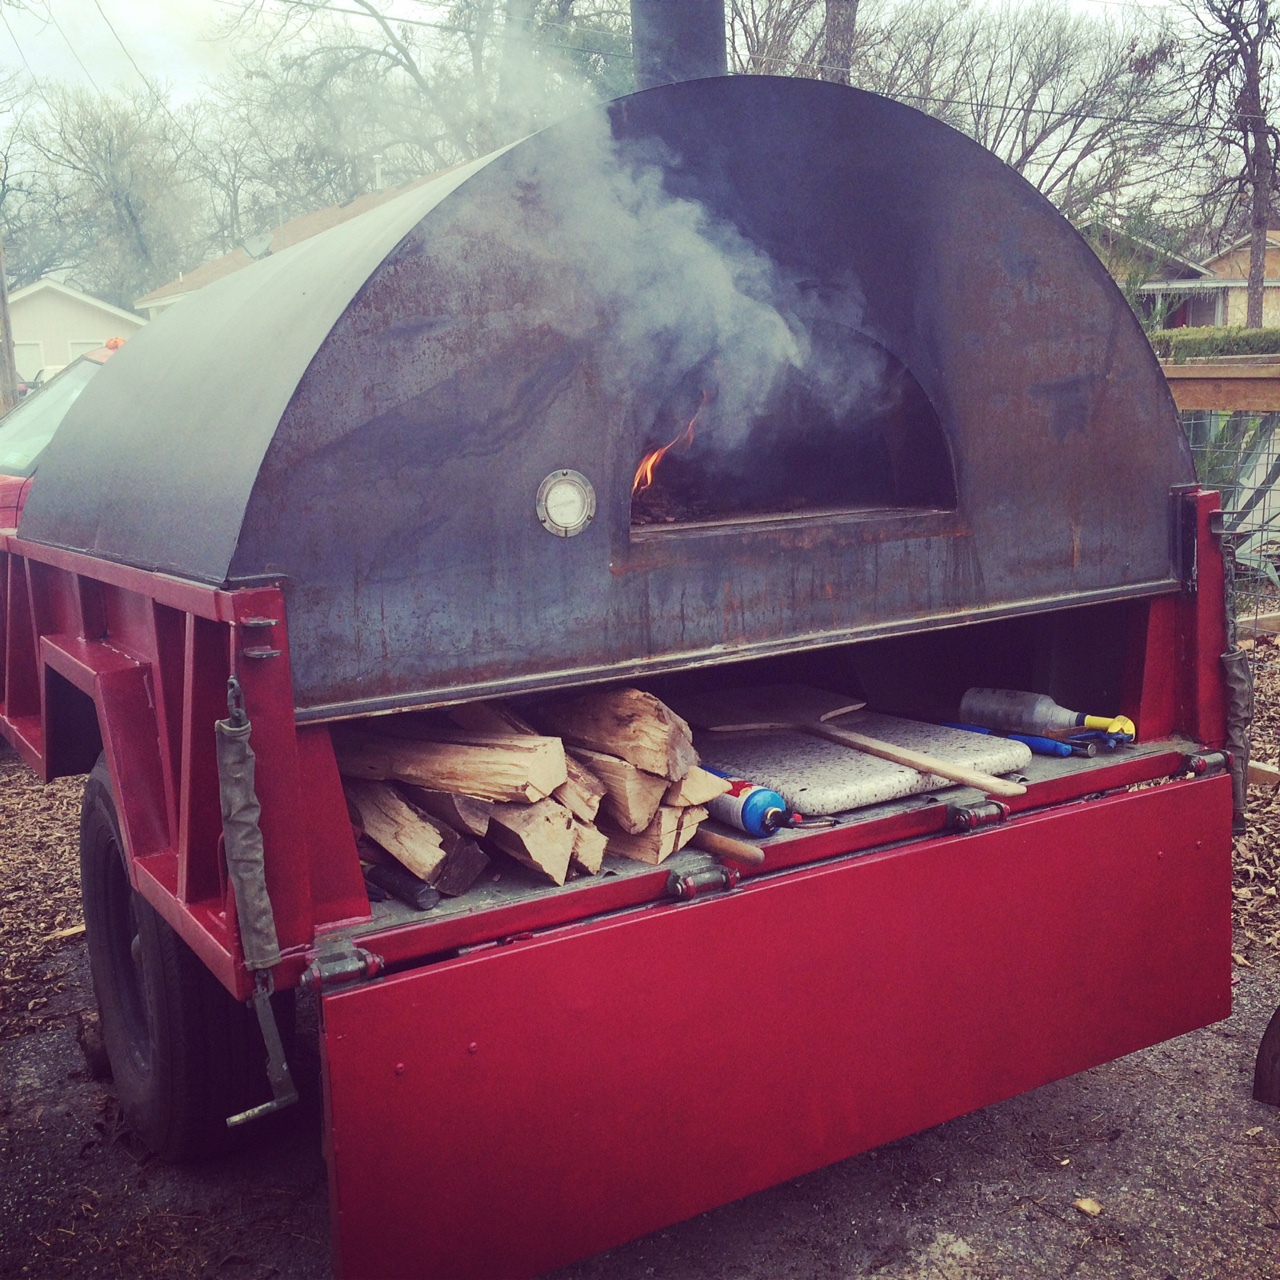 Buy Custom Built Mobile Wood Fired Pizza Trailer Oven Start a Catering Business.JPG